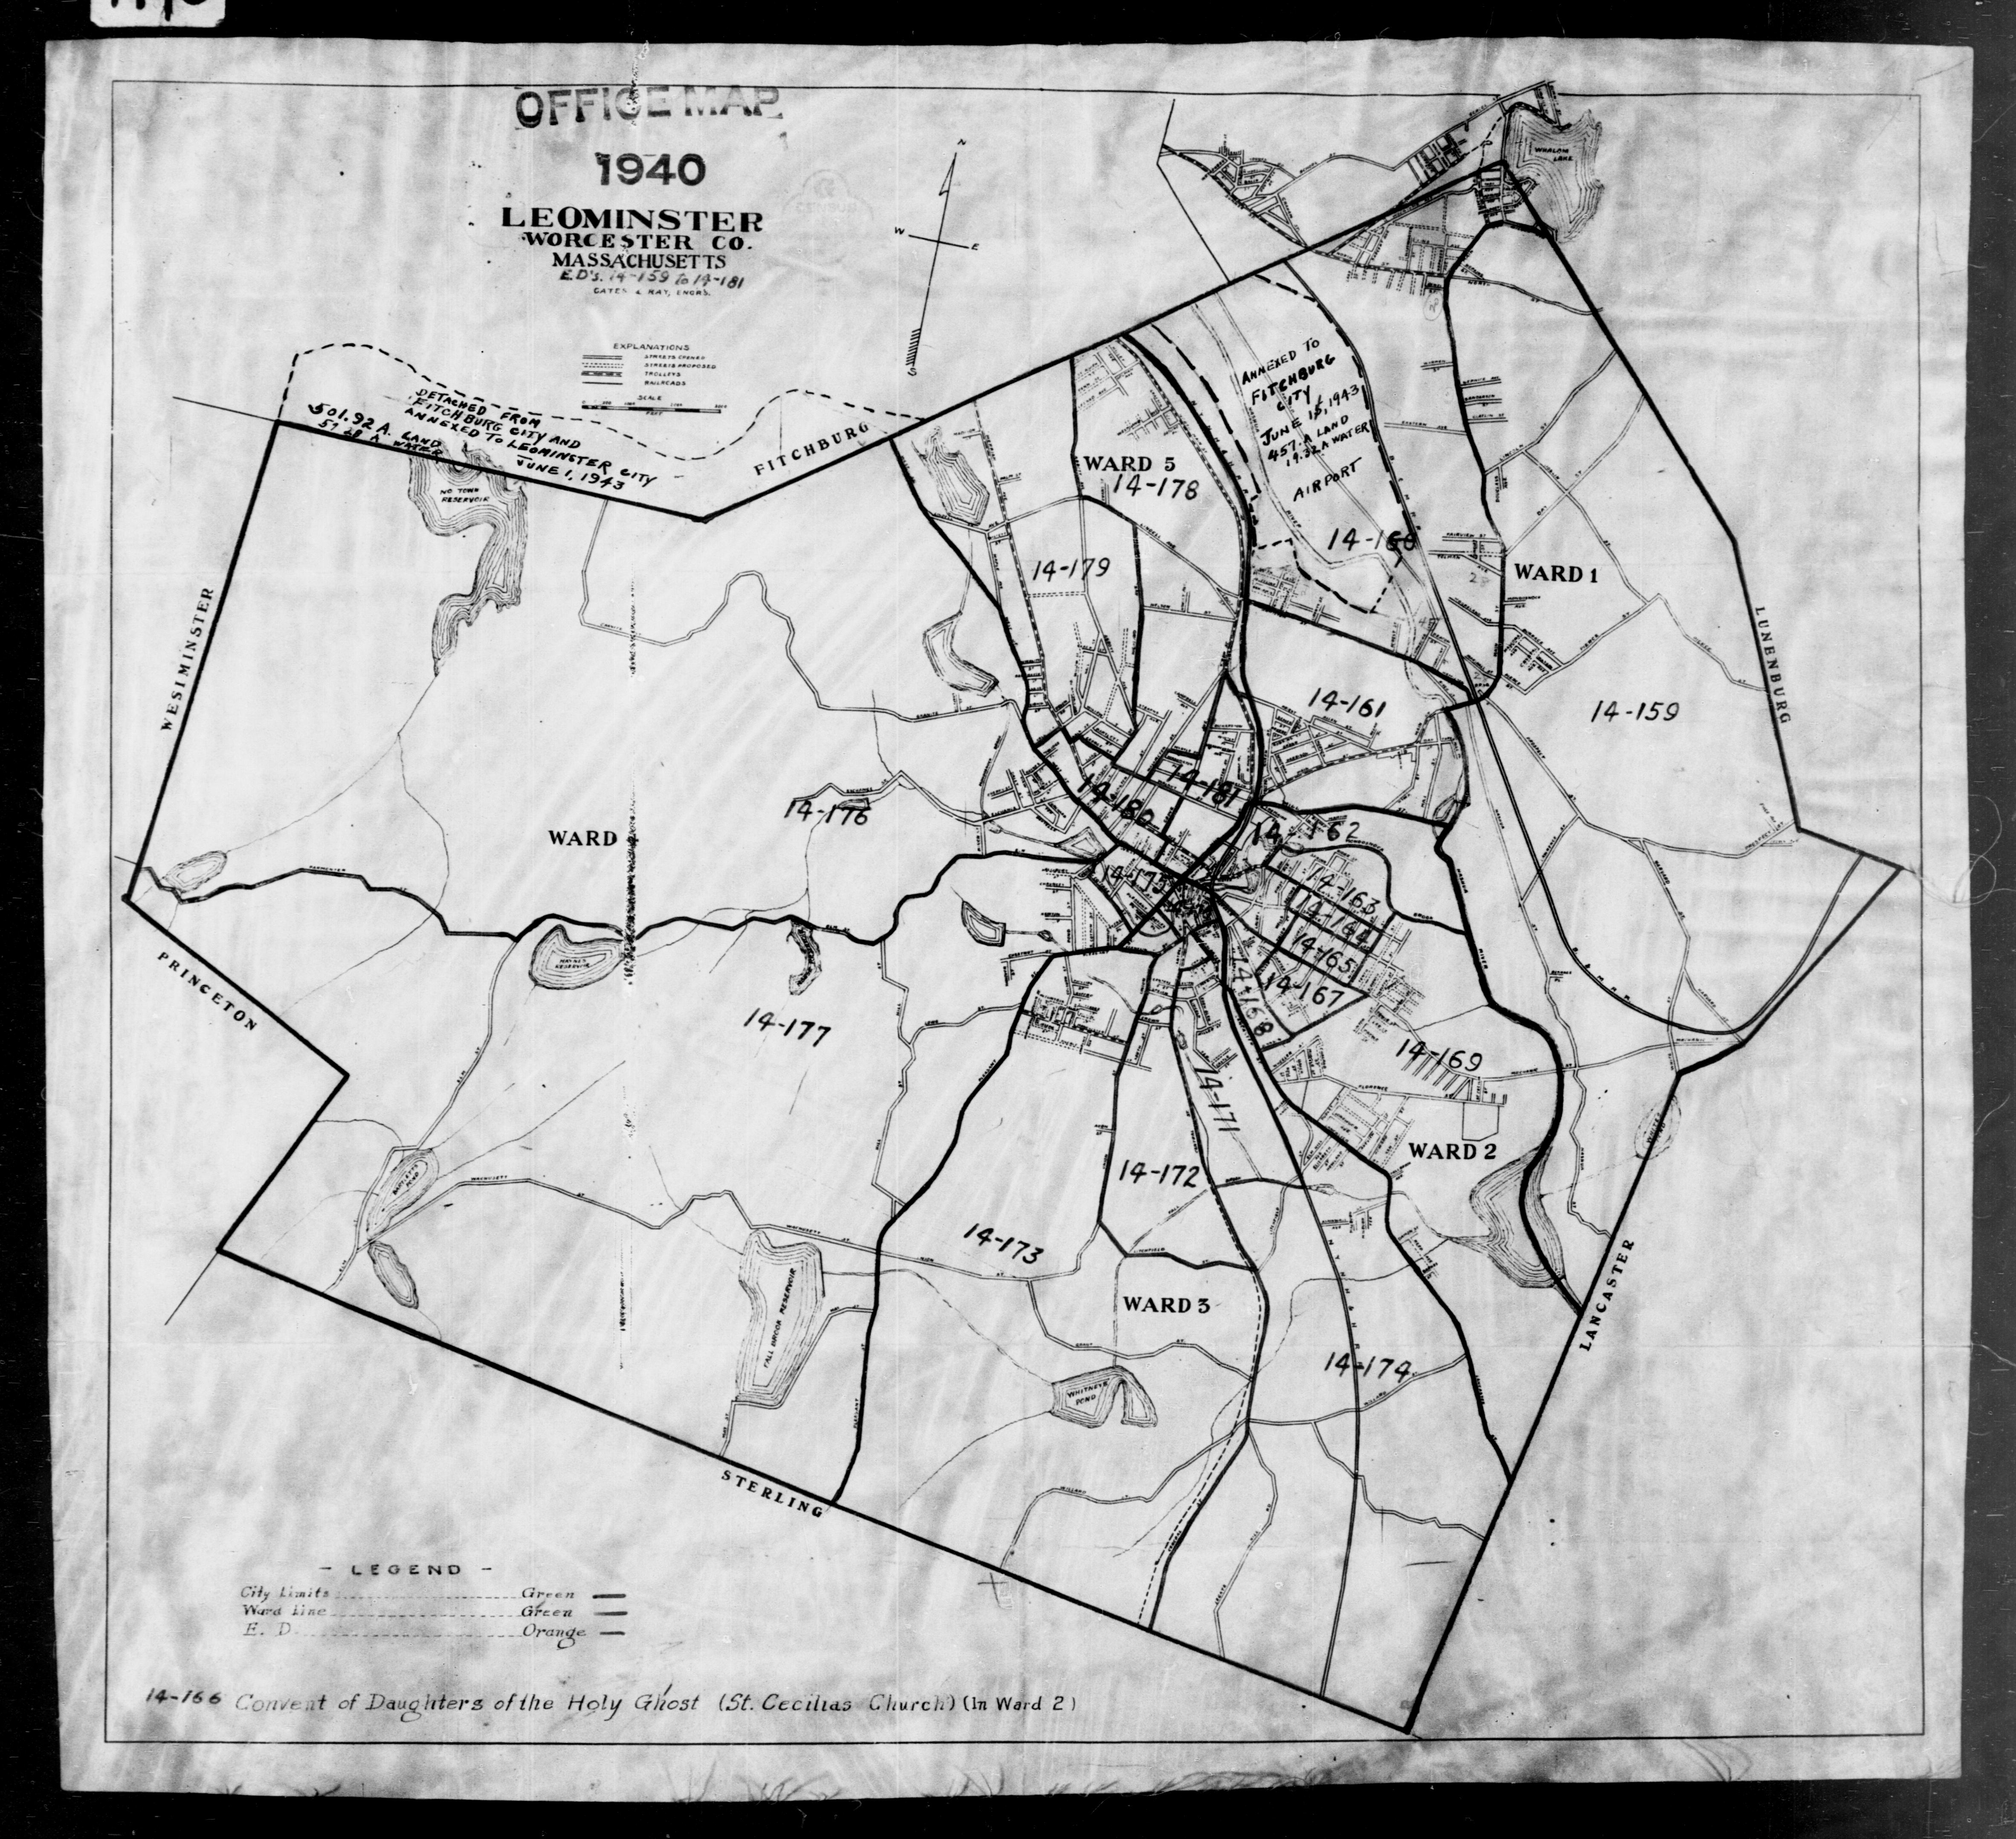 1940 Census Enumeration District Maps - Massachusetts - Worcester County - Leominster - ED 14-159 - ED 14-181